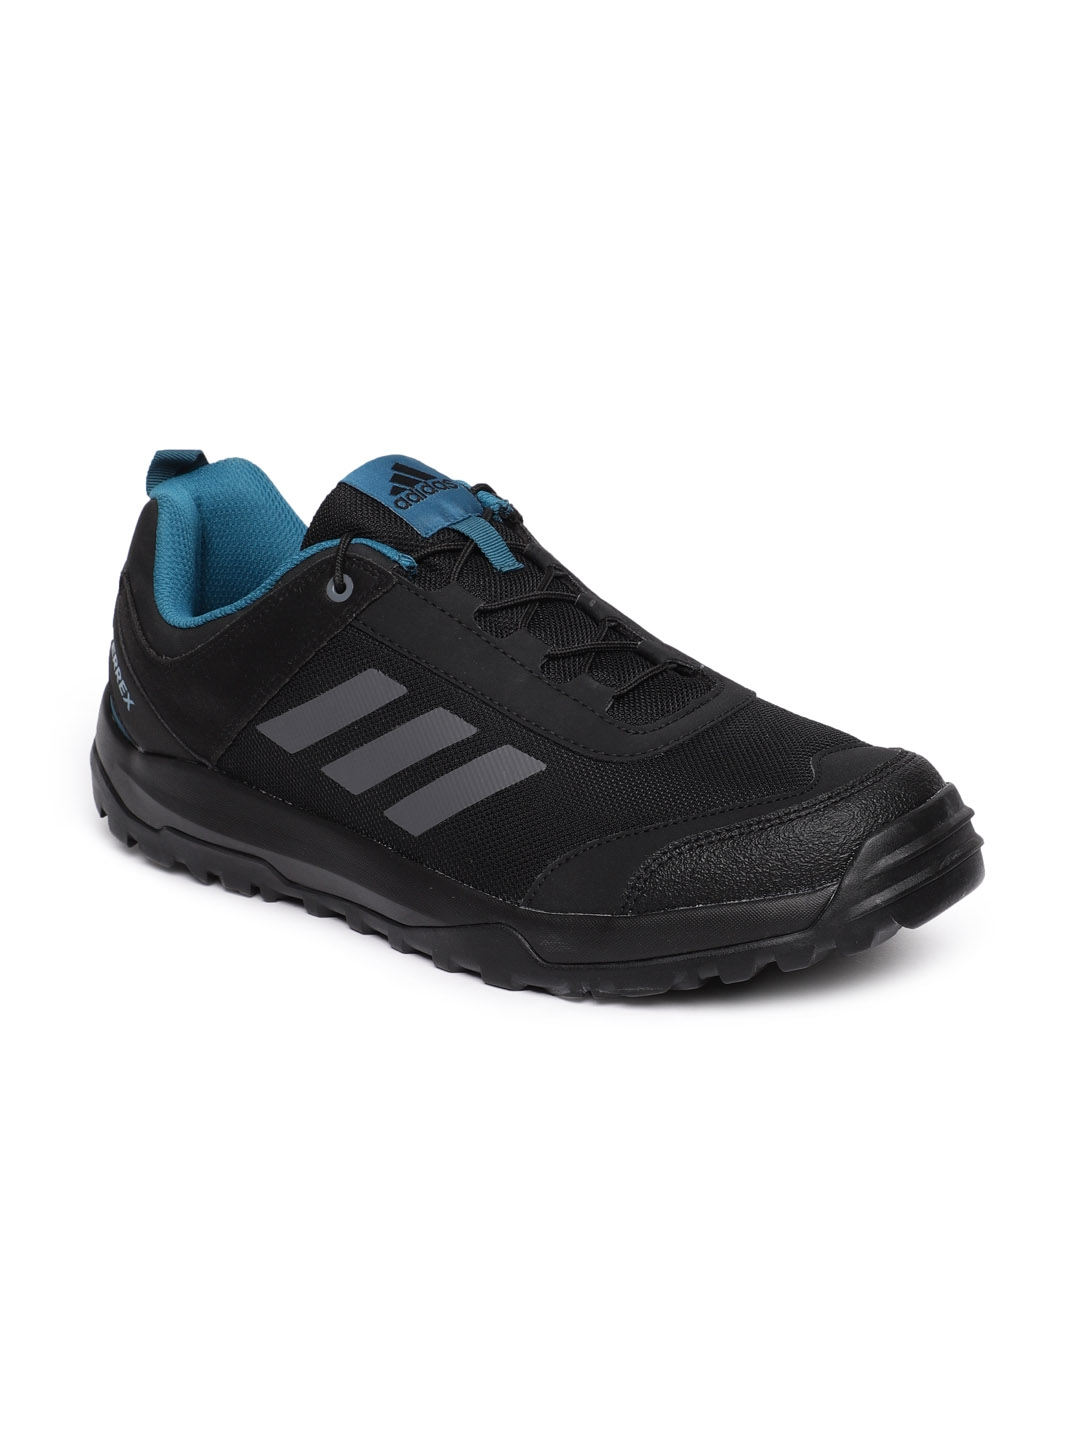 b19f5315261ee4 Buy ADIDAS Men Black Terrex BEARN Outdoor Shoes - Sports Shoes for ...